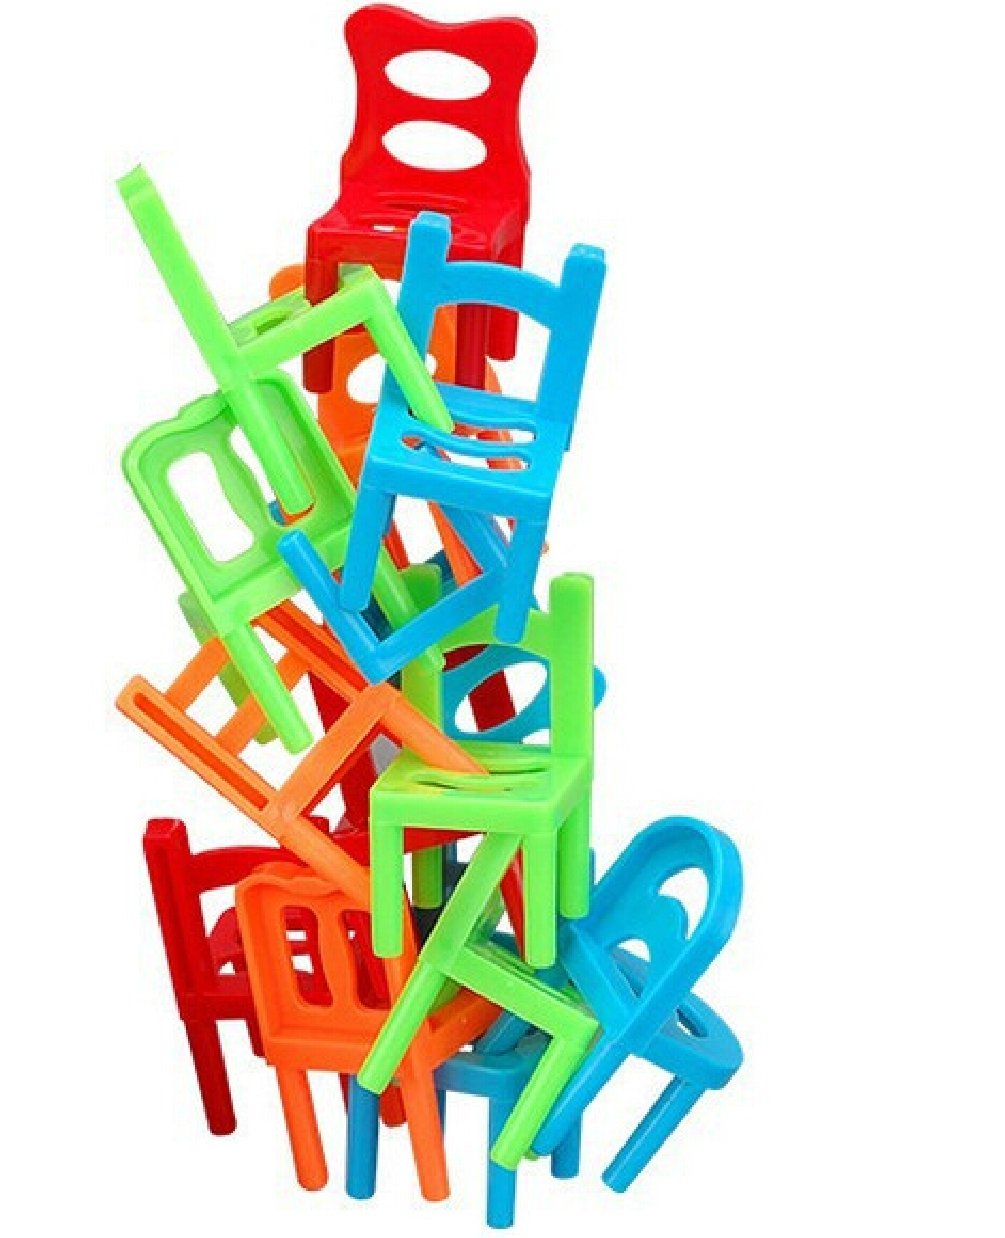 1set=18PCS/lot Family Board Game Children Educational Toy Balance Stacking Chairs Chair Stool Office Game by Yan Toy Gift (Image #1)